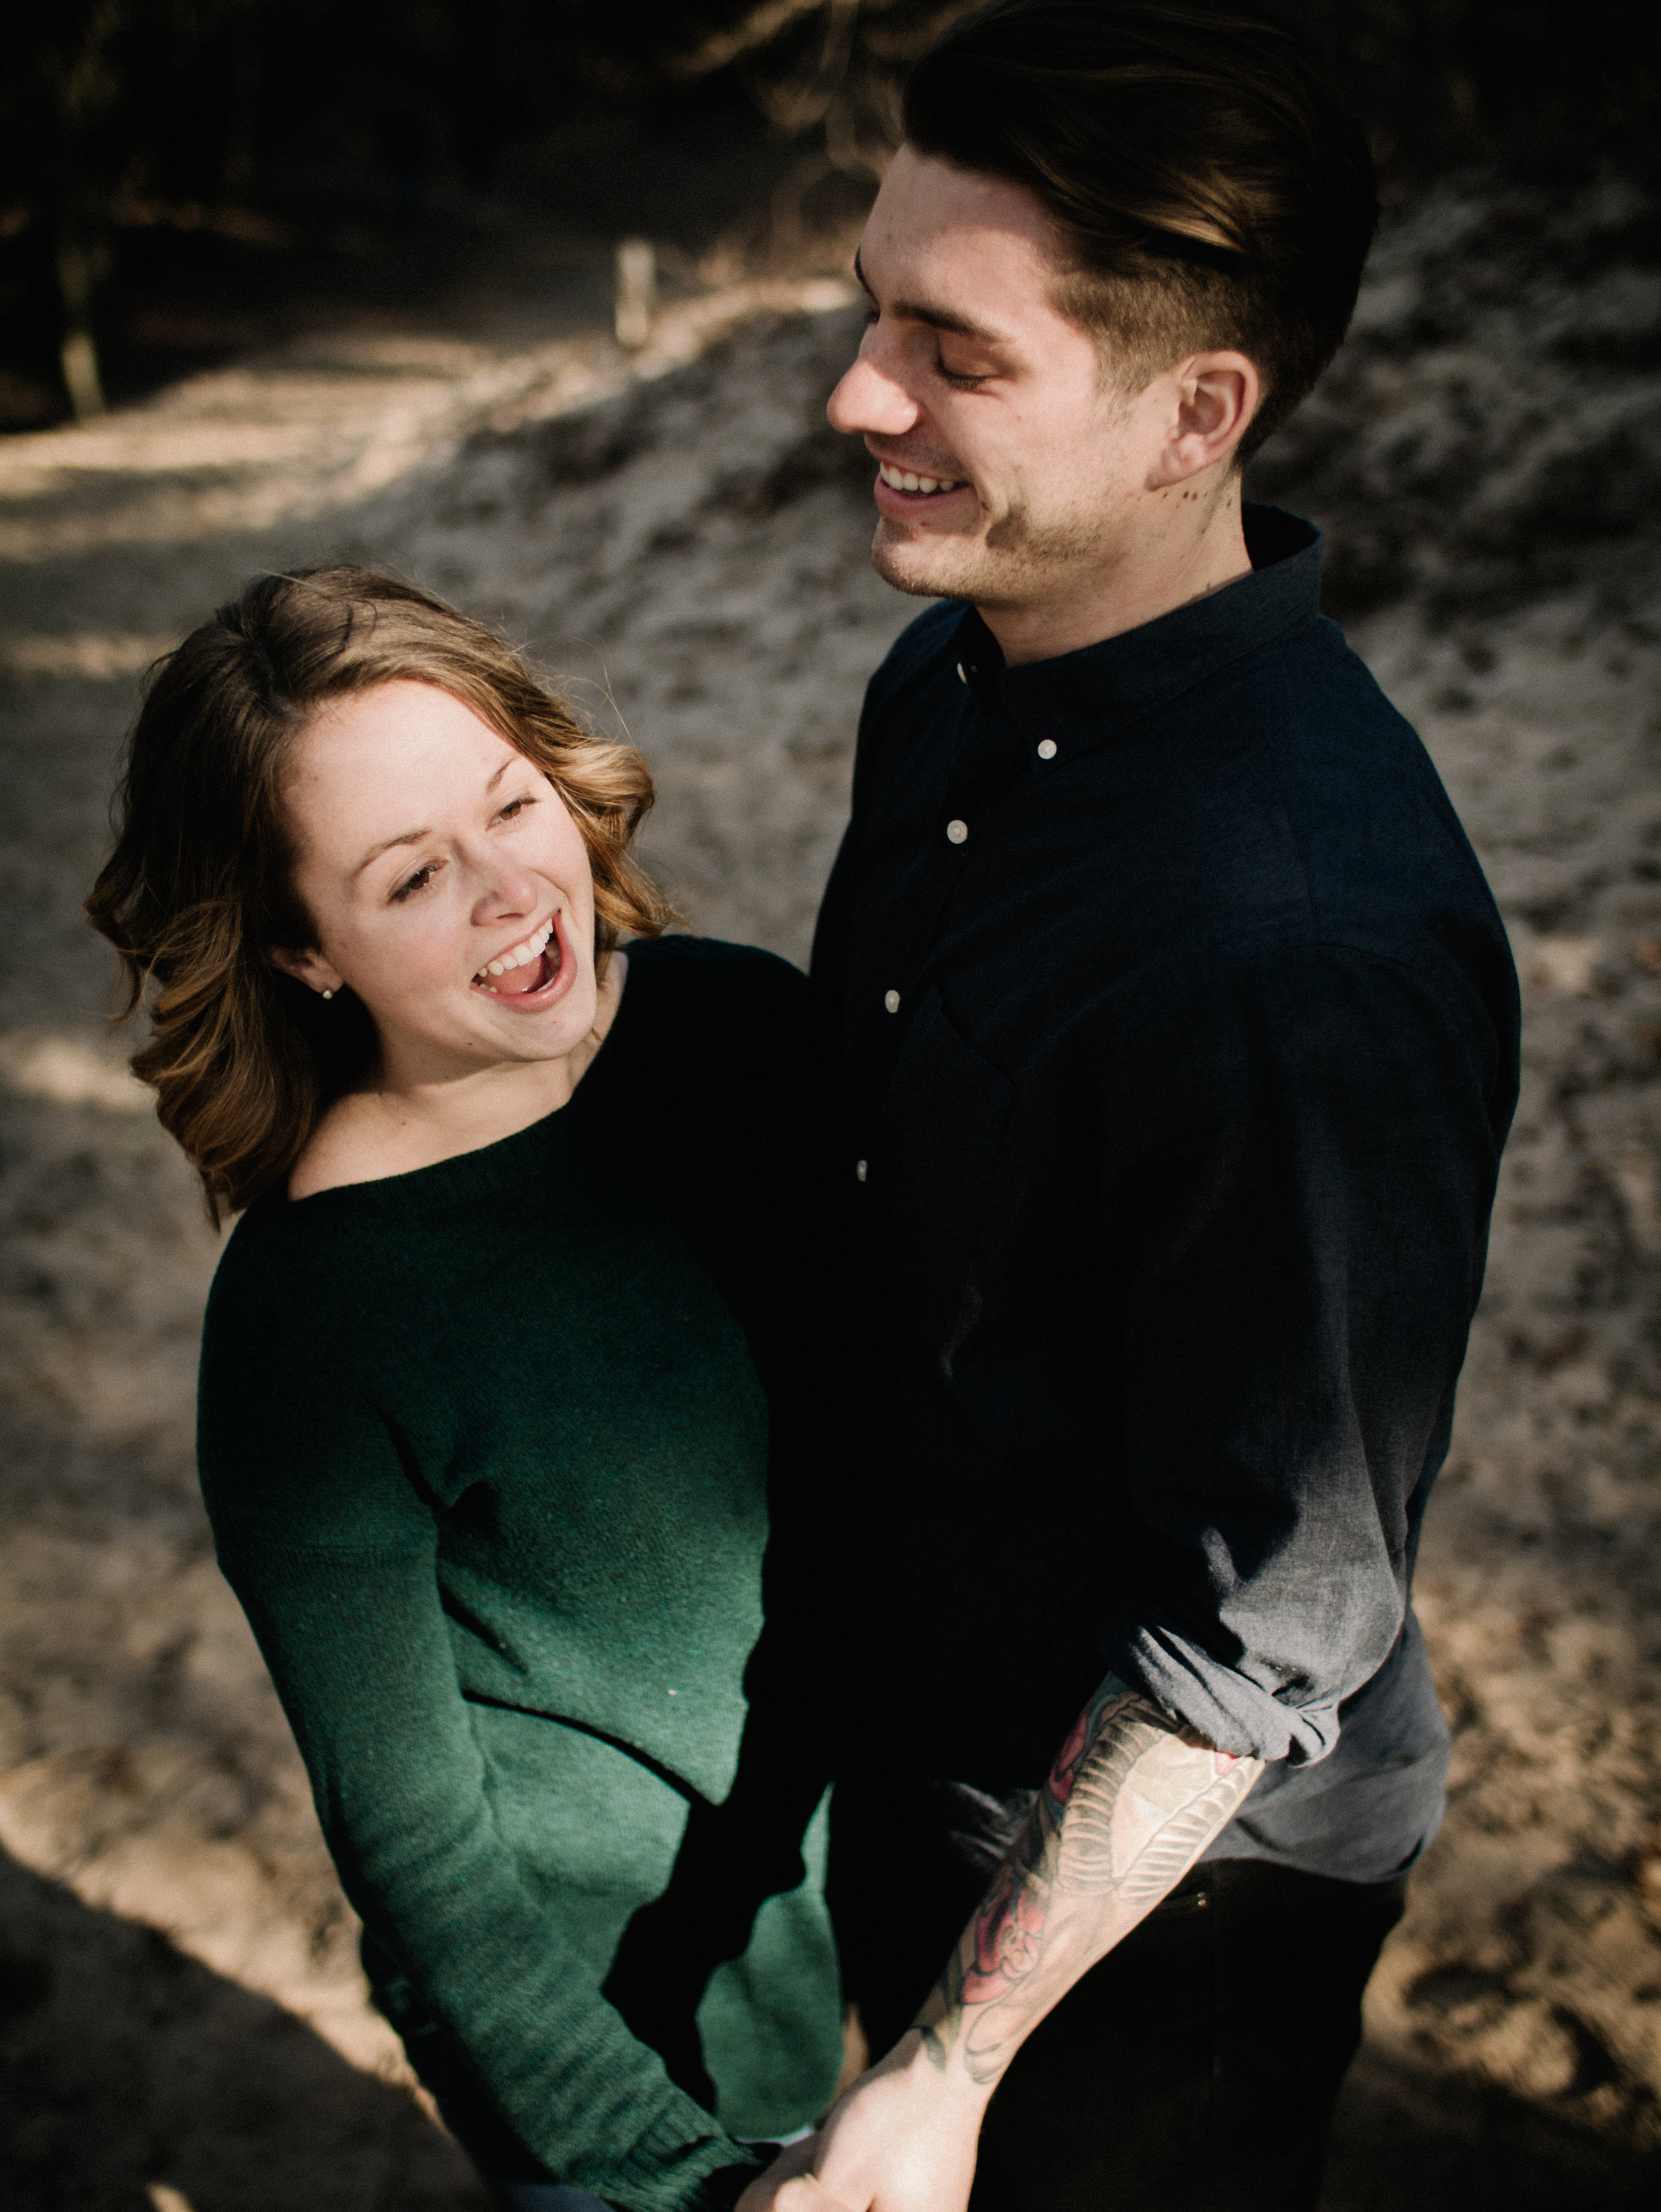 NOAH_PAIGE_LEHMAN_MCGOLDRICK_MICHIGAN_ENGAGEMENT_PHOTOGRAPHY_0034.jpg